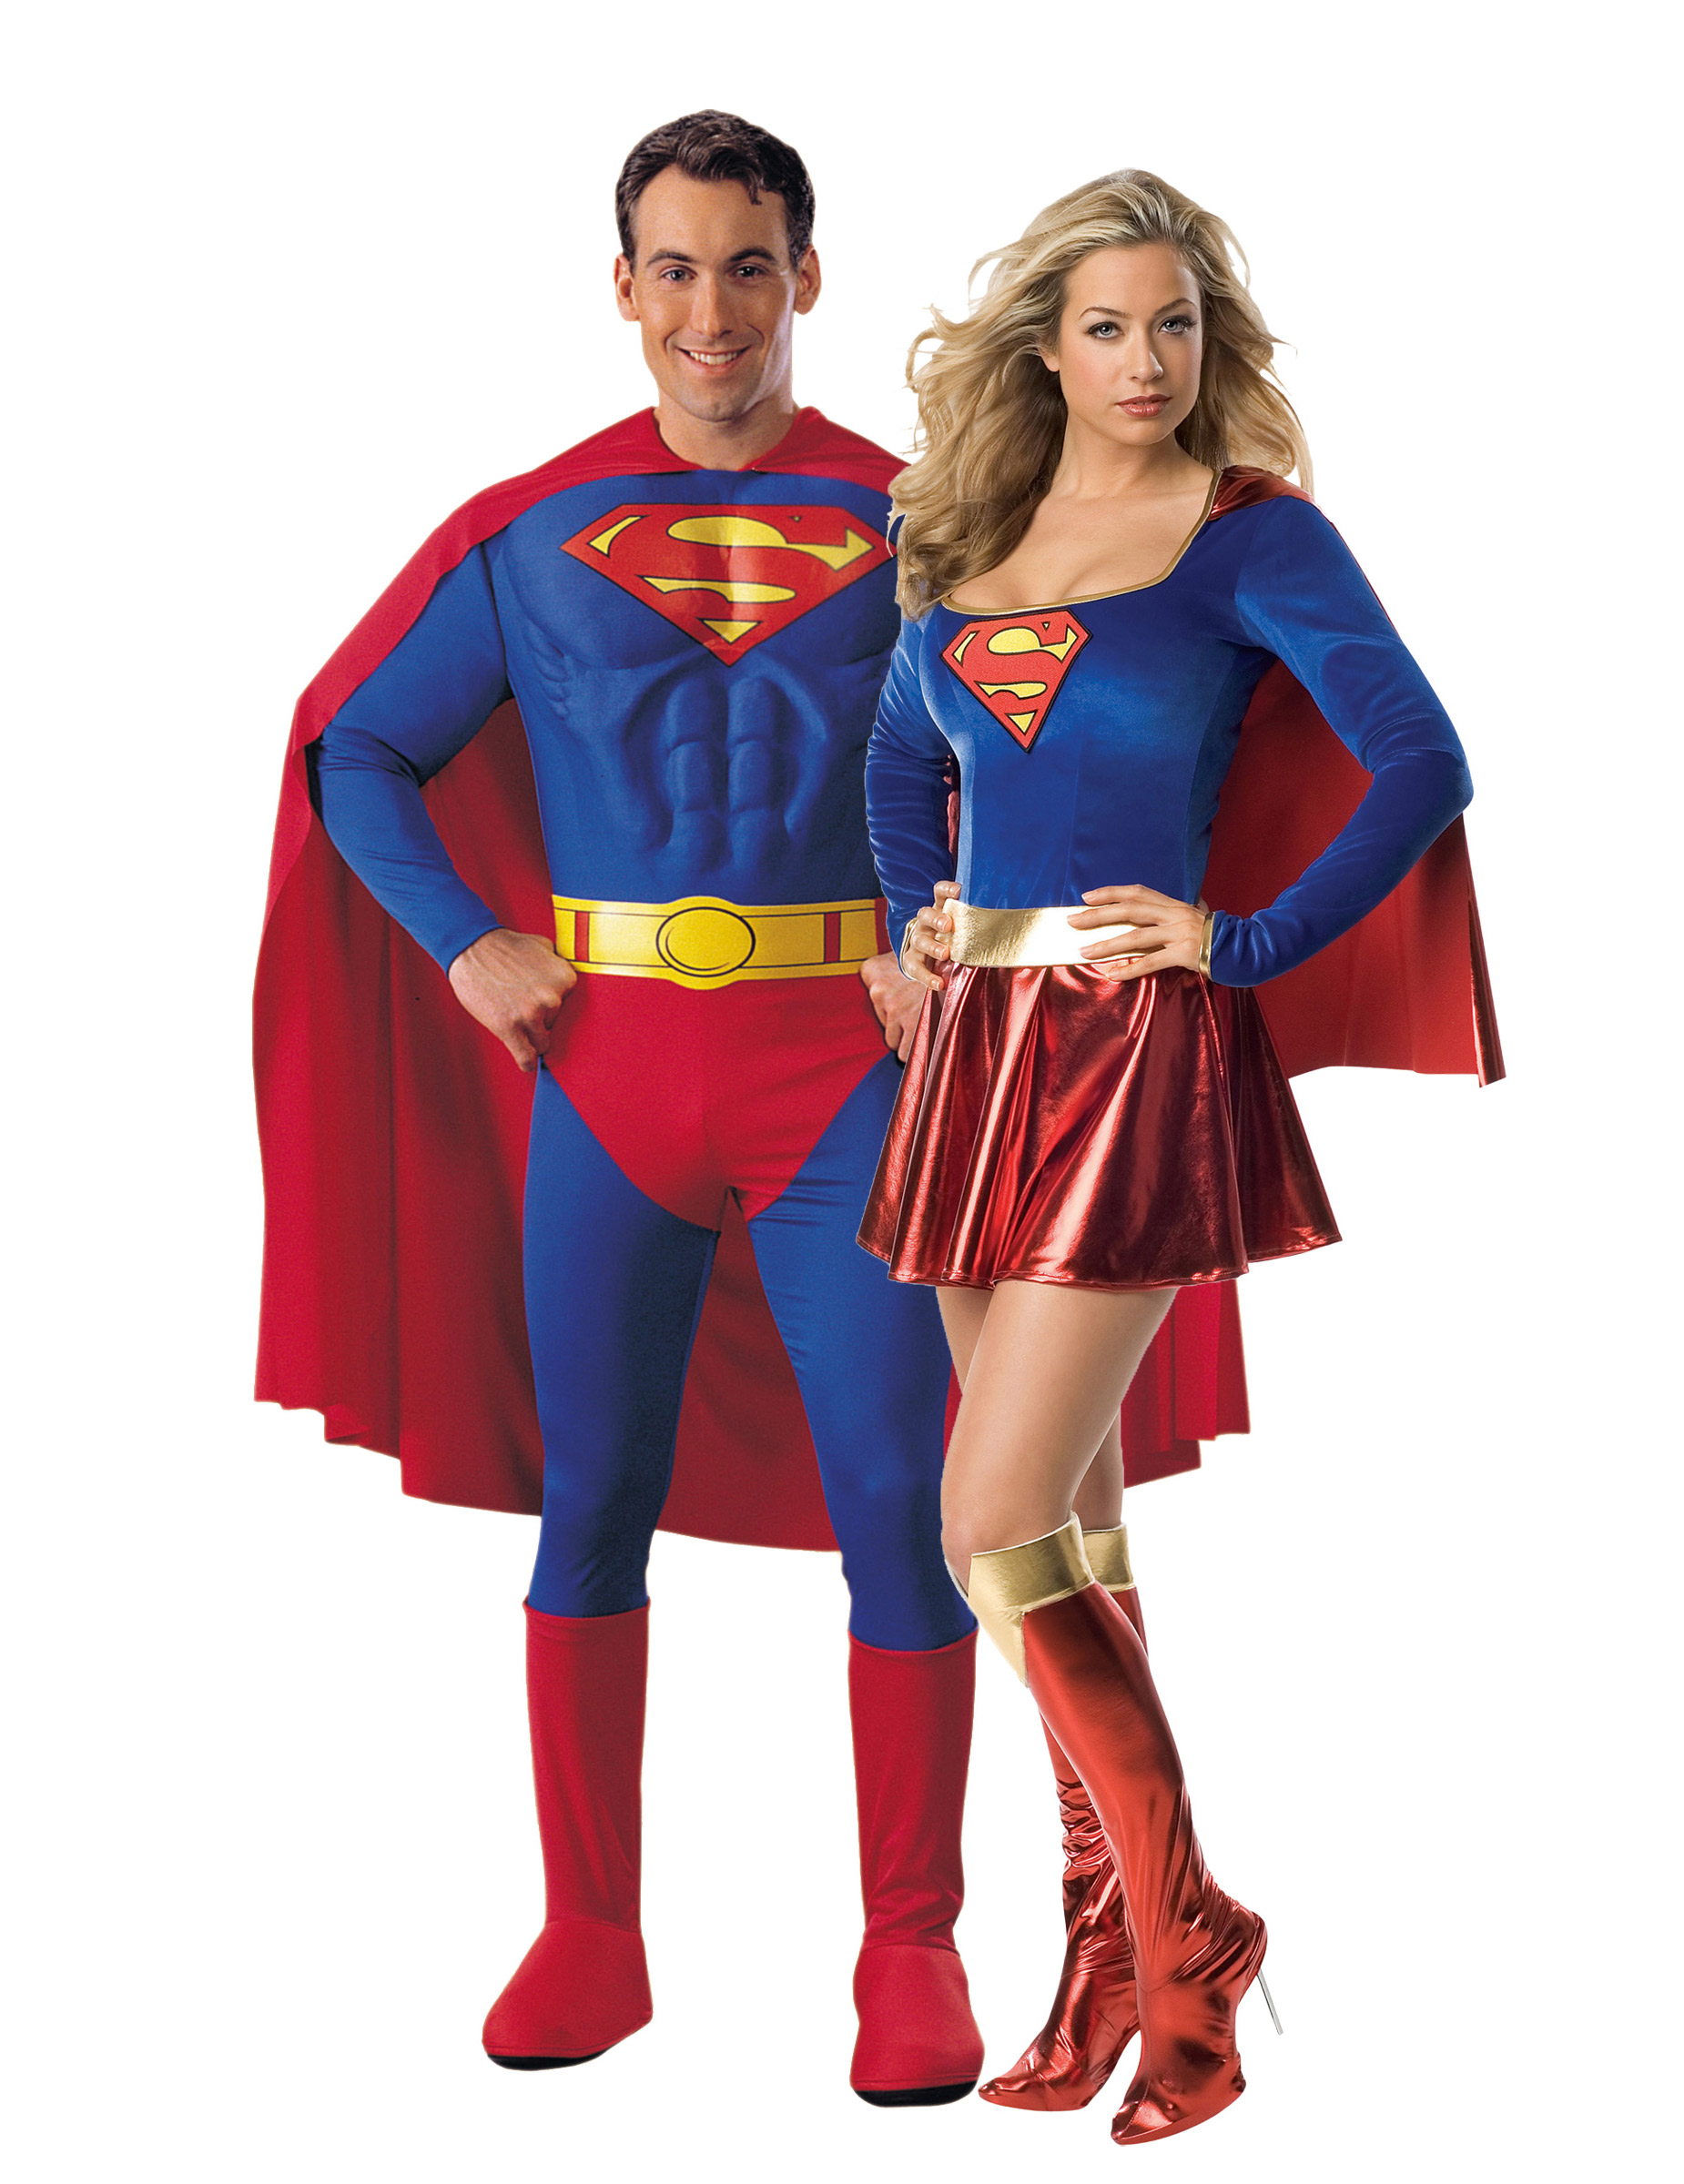 d guisement couple superman et supergirl d coration anniversaire et f tes th me sur vegaoo party. Black Bedroom Furniture Sets. Home Design Ideas